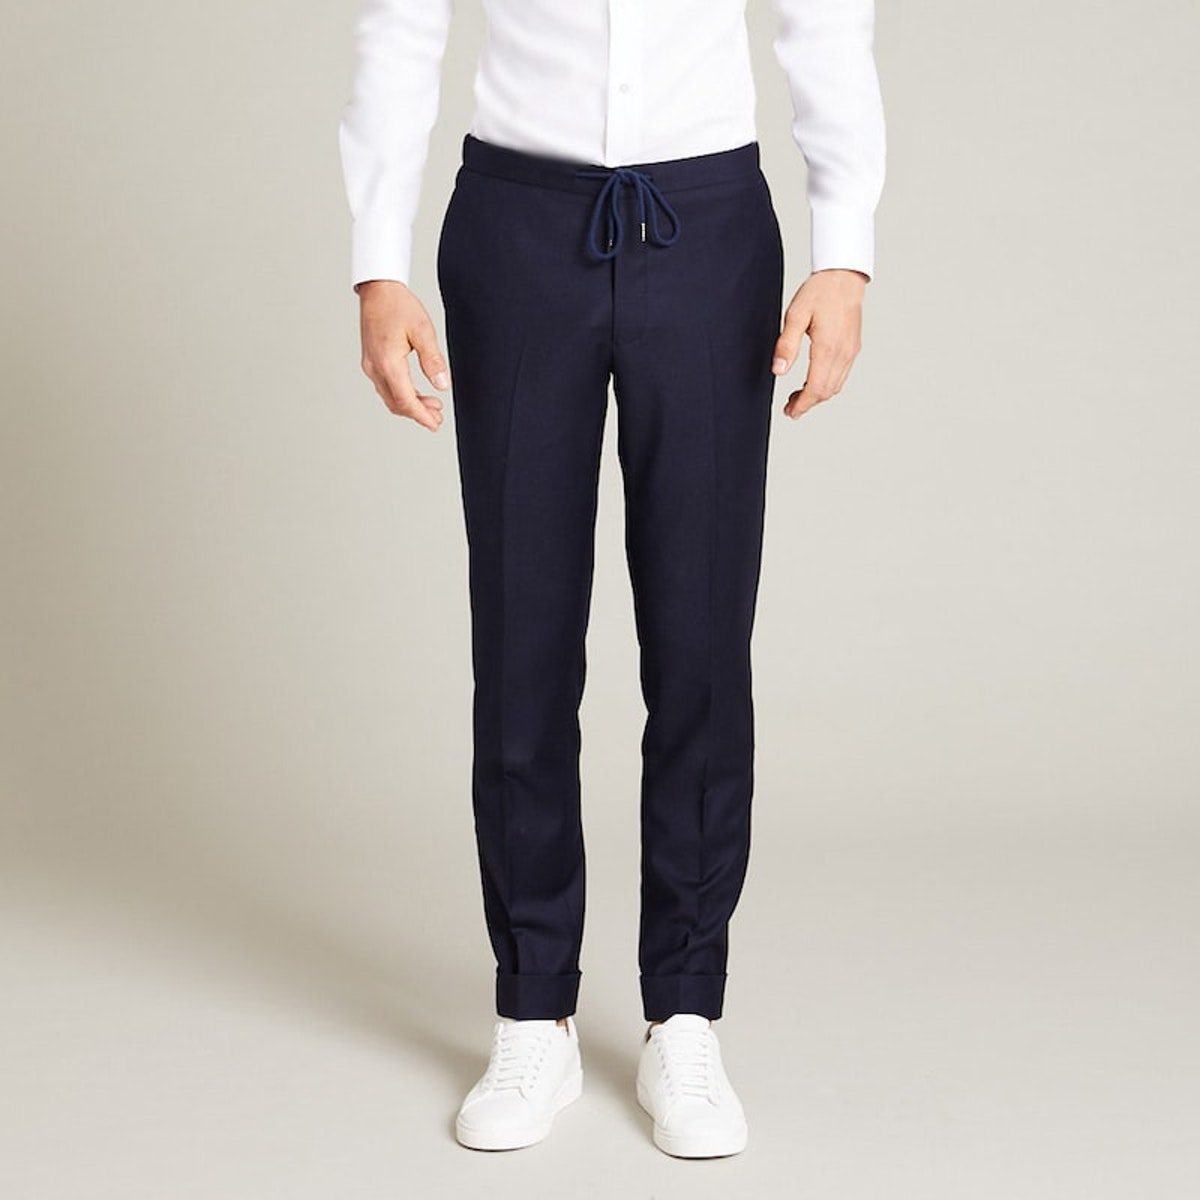 InStitchu Collection The Harrison Navy Flannel Drawstring Pants